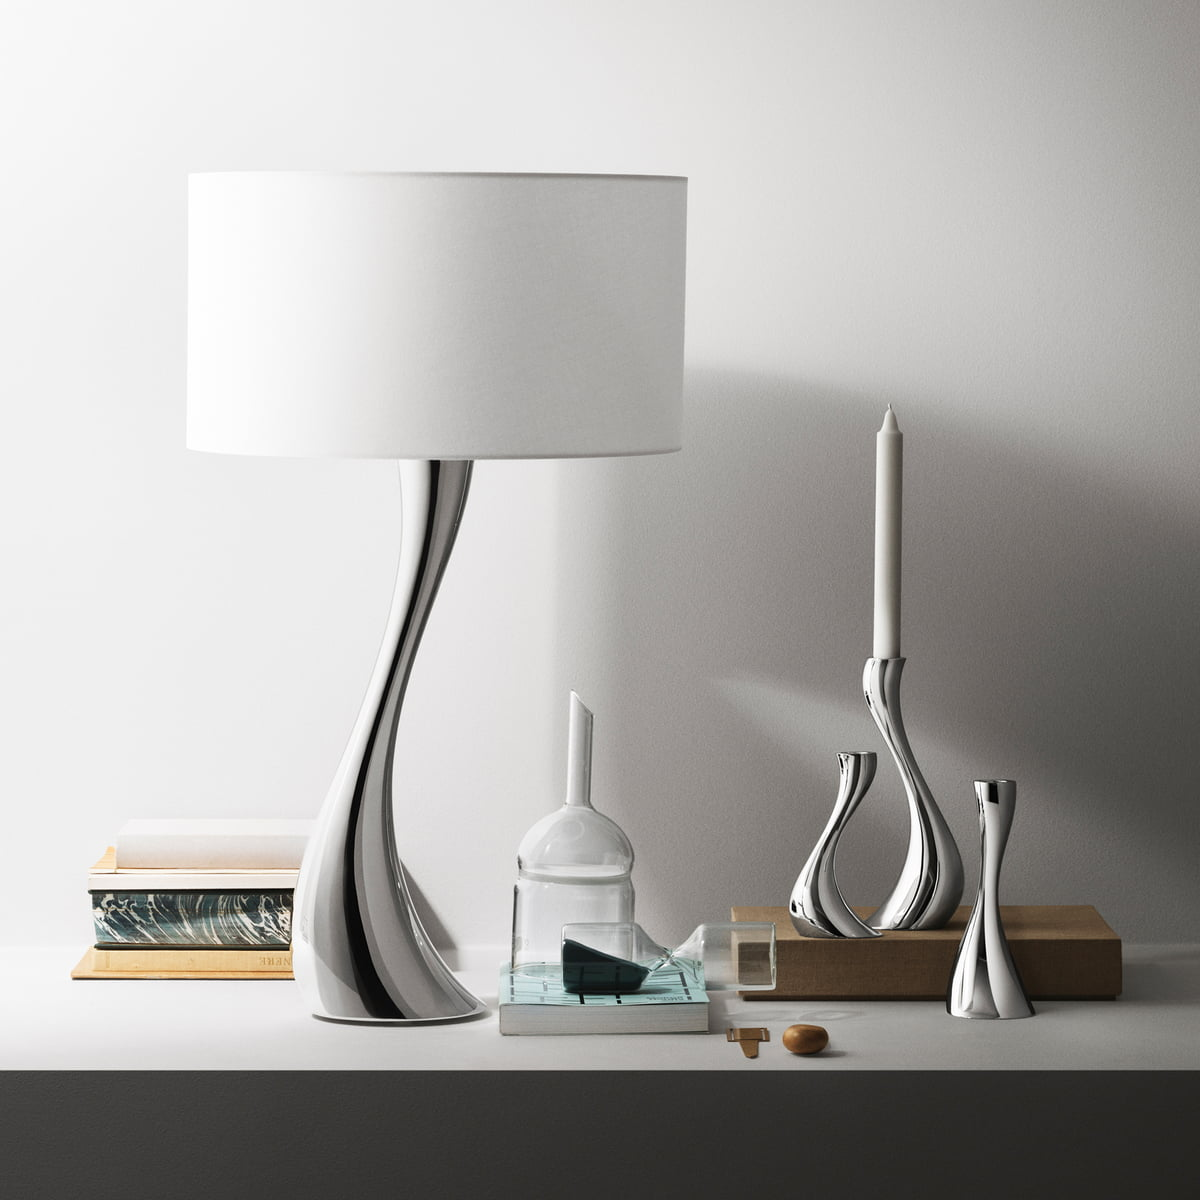 Georg Jensen S London Boutique By Studio David Thulstrup: The Cobra Table Lamp By Georg Jensen In The Shop